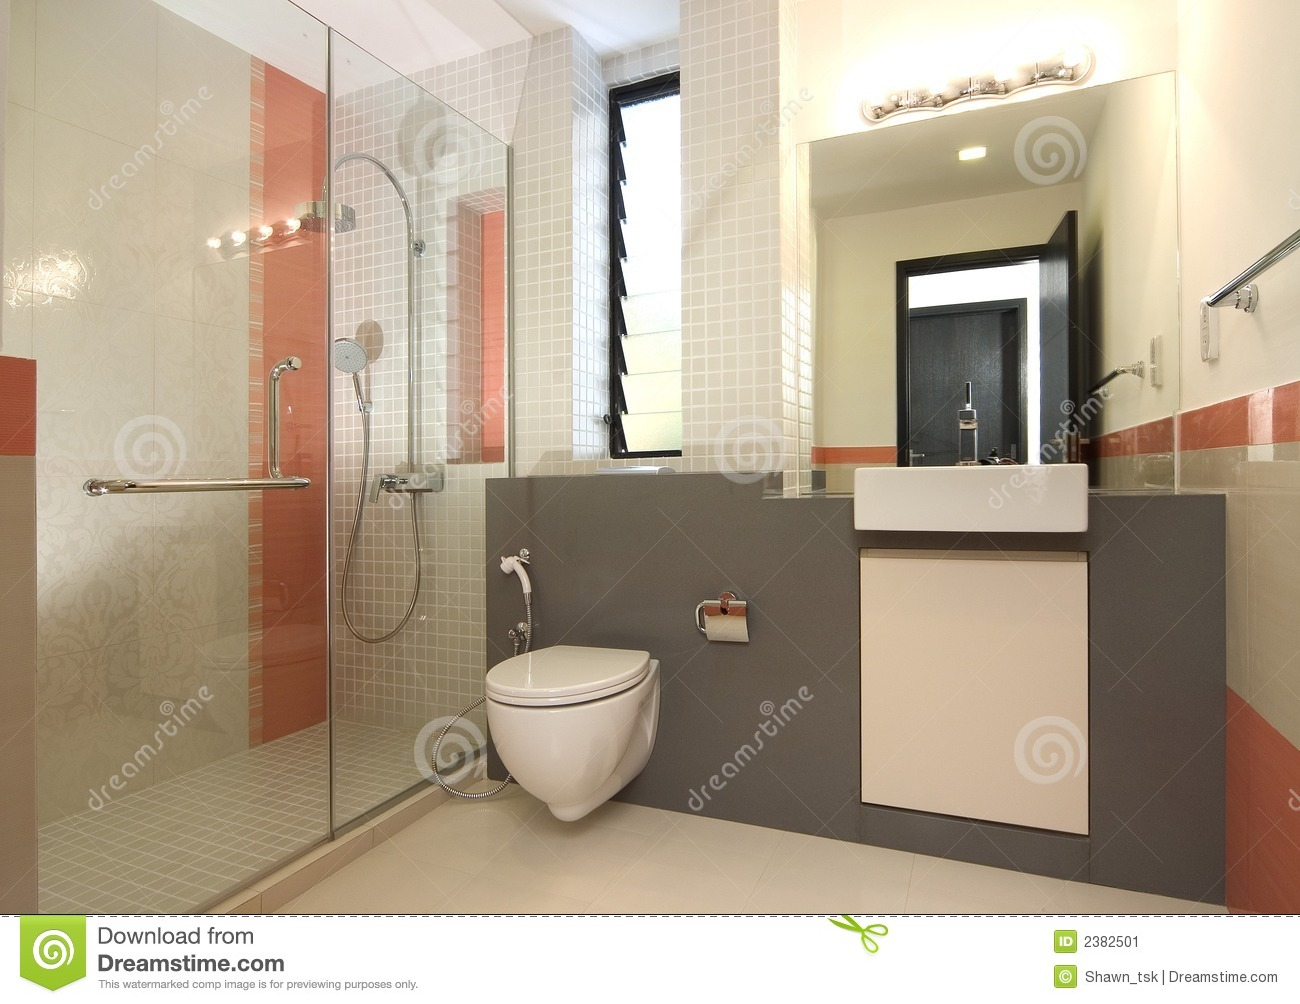 Interior design bathroom stock image image of light for Bathroom interior design